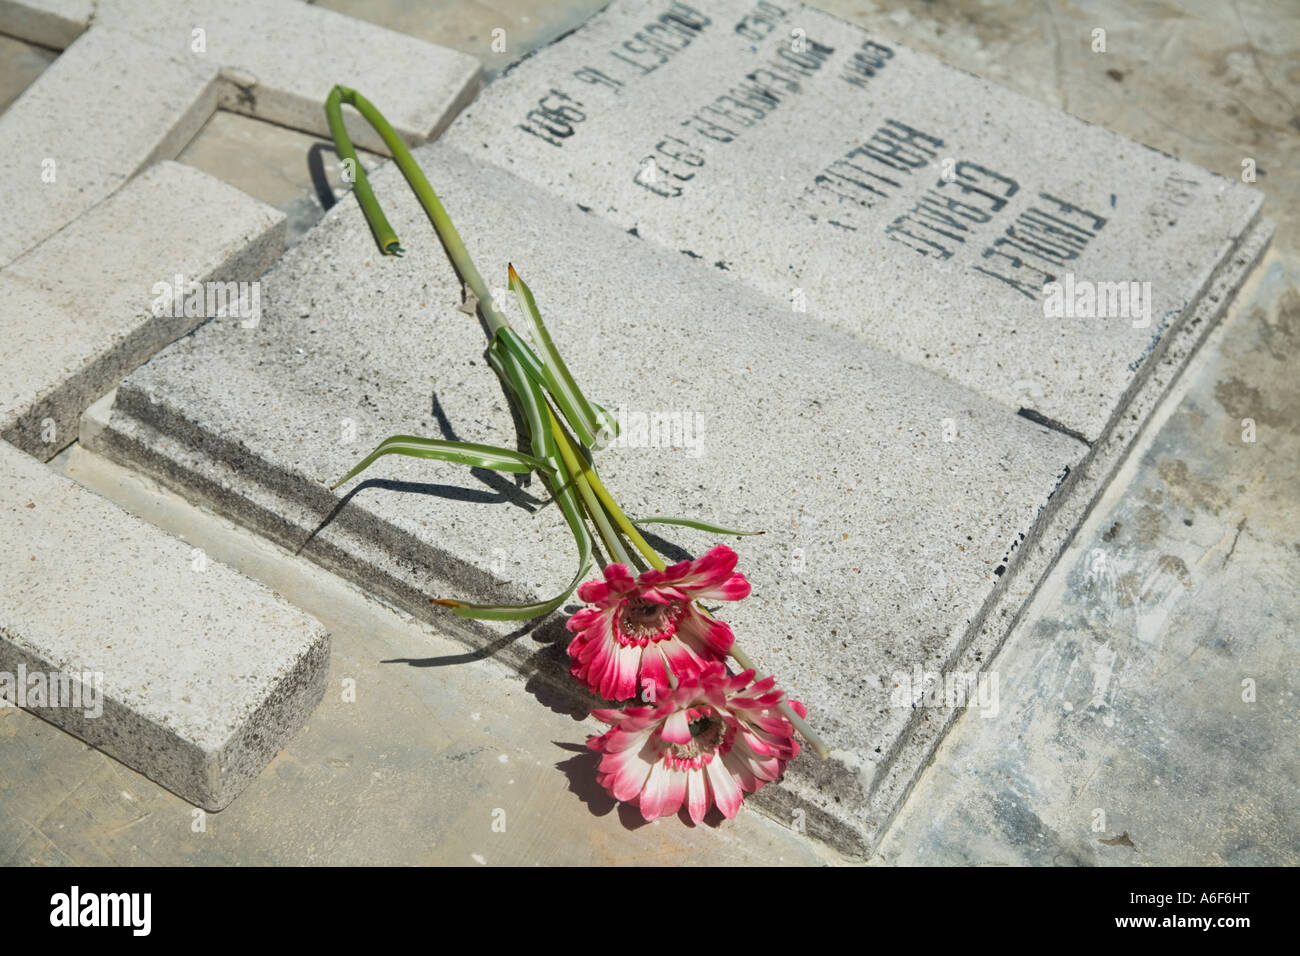 Laid Flowers Stock Photos & Laid Flowers Stock Images - Alamy